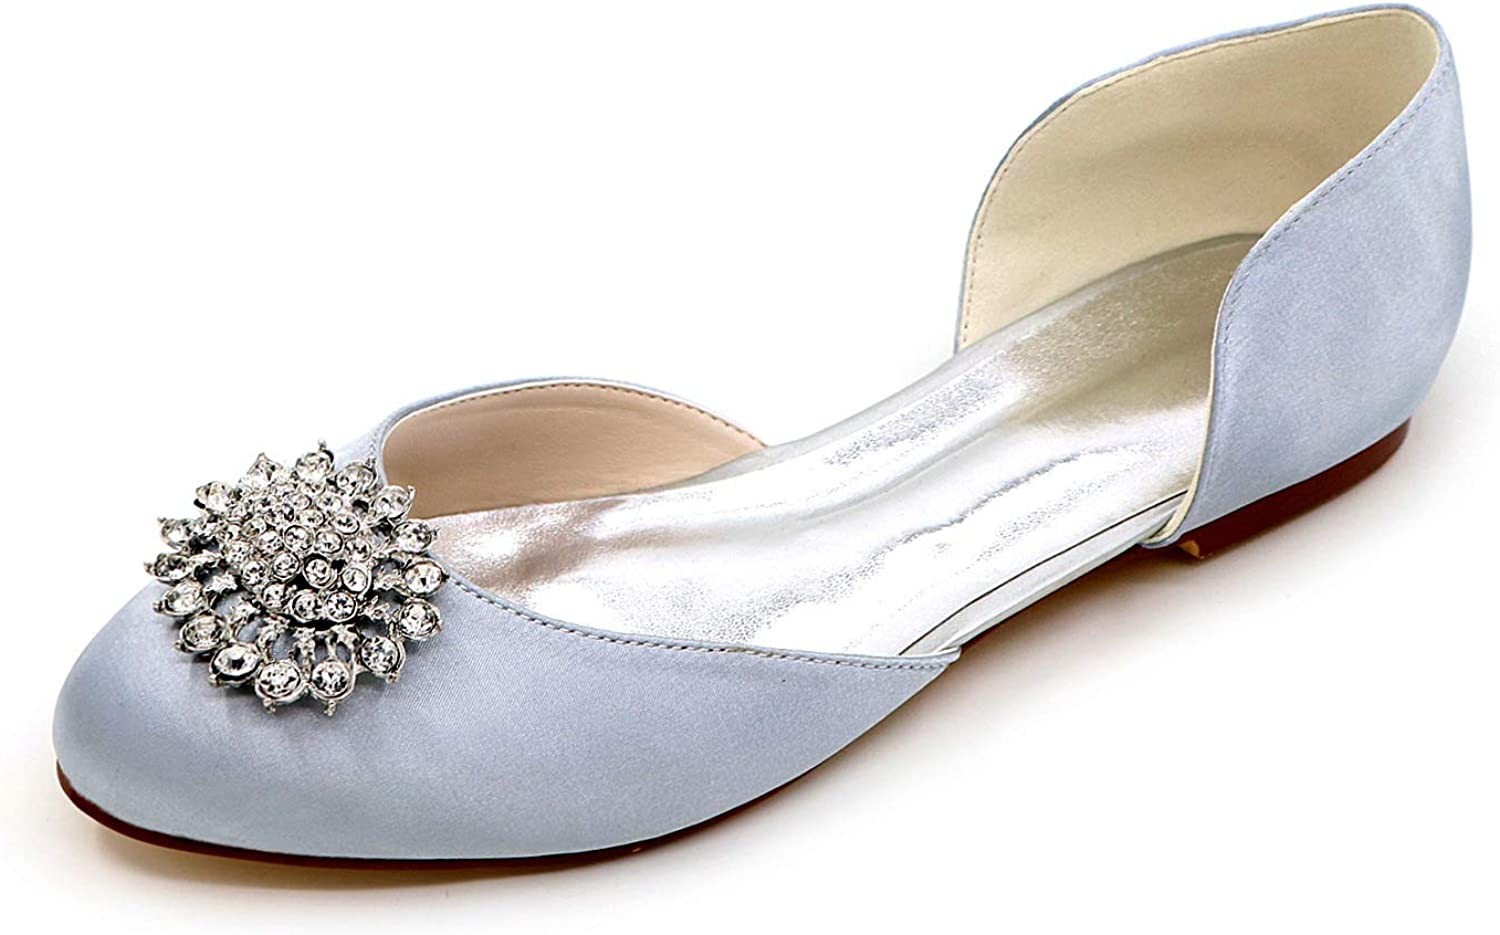 LLBubble Casual Flat shoes Women Round Toe Satin Crystals Satin Ballet shoes 9872-14